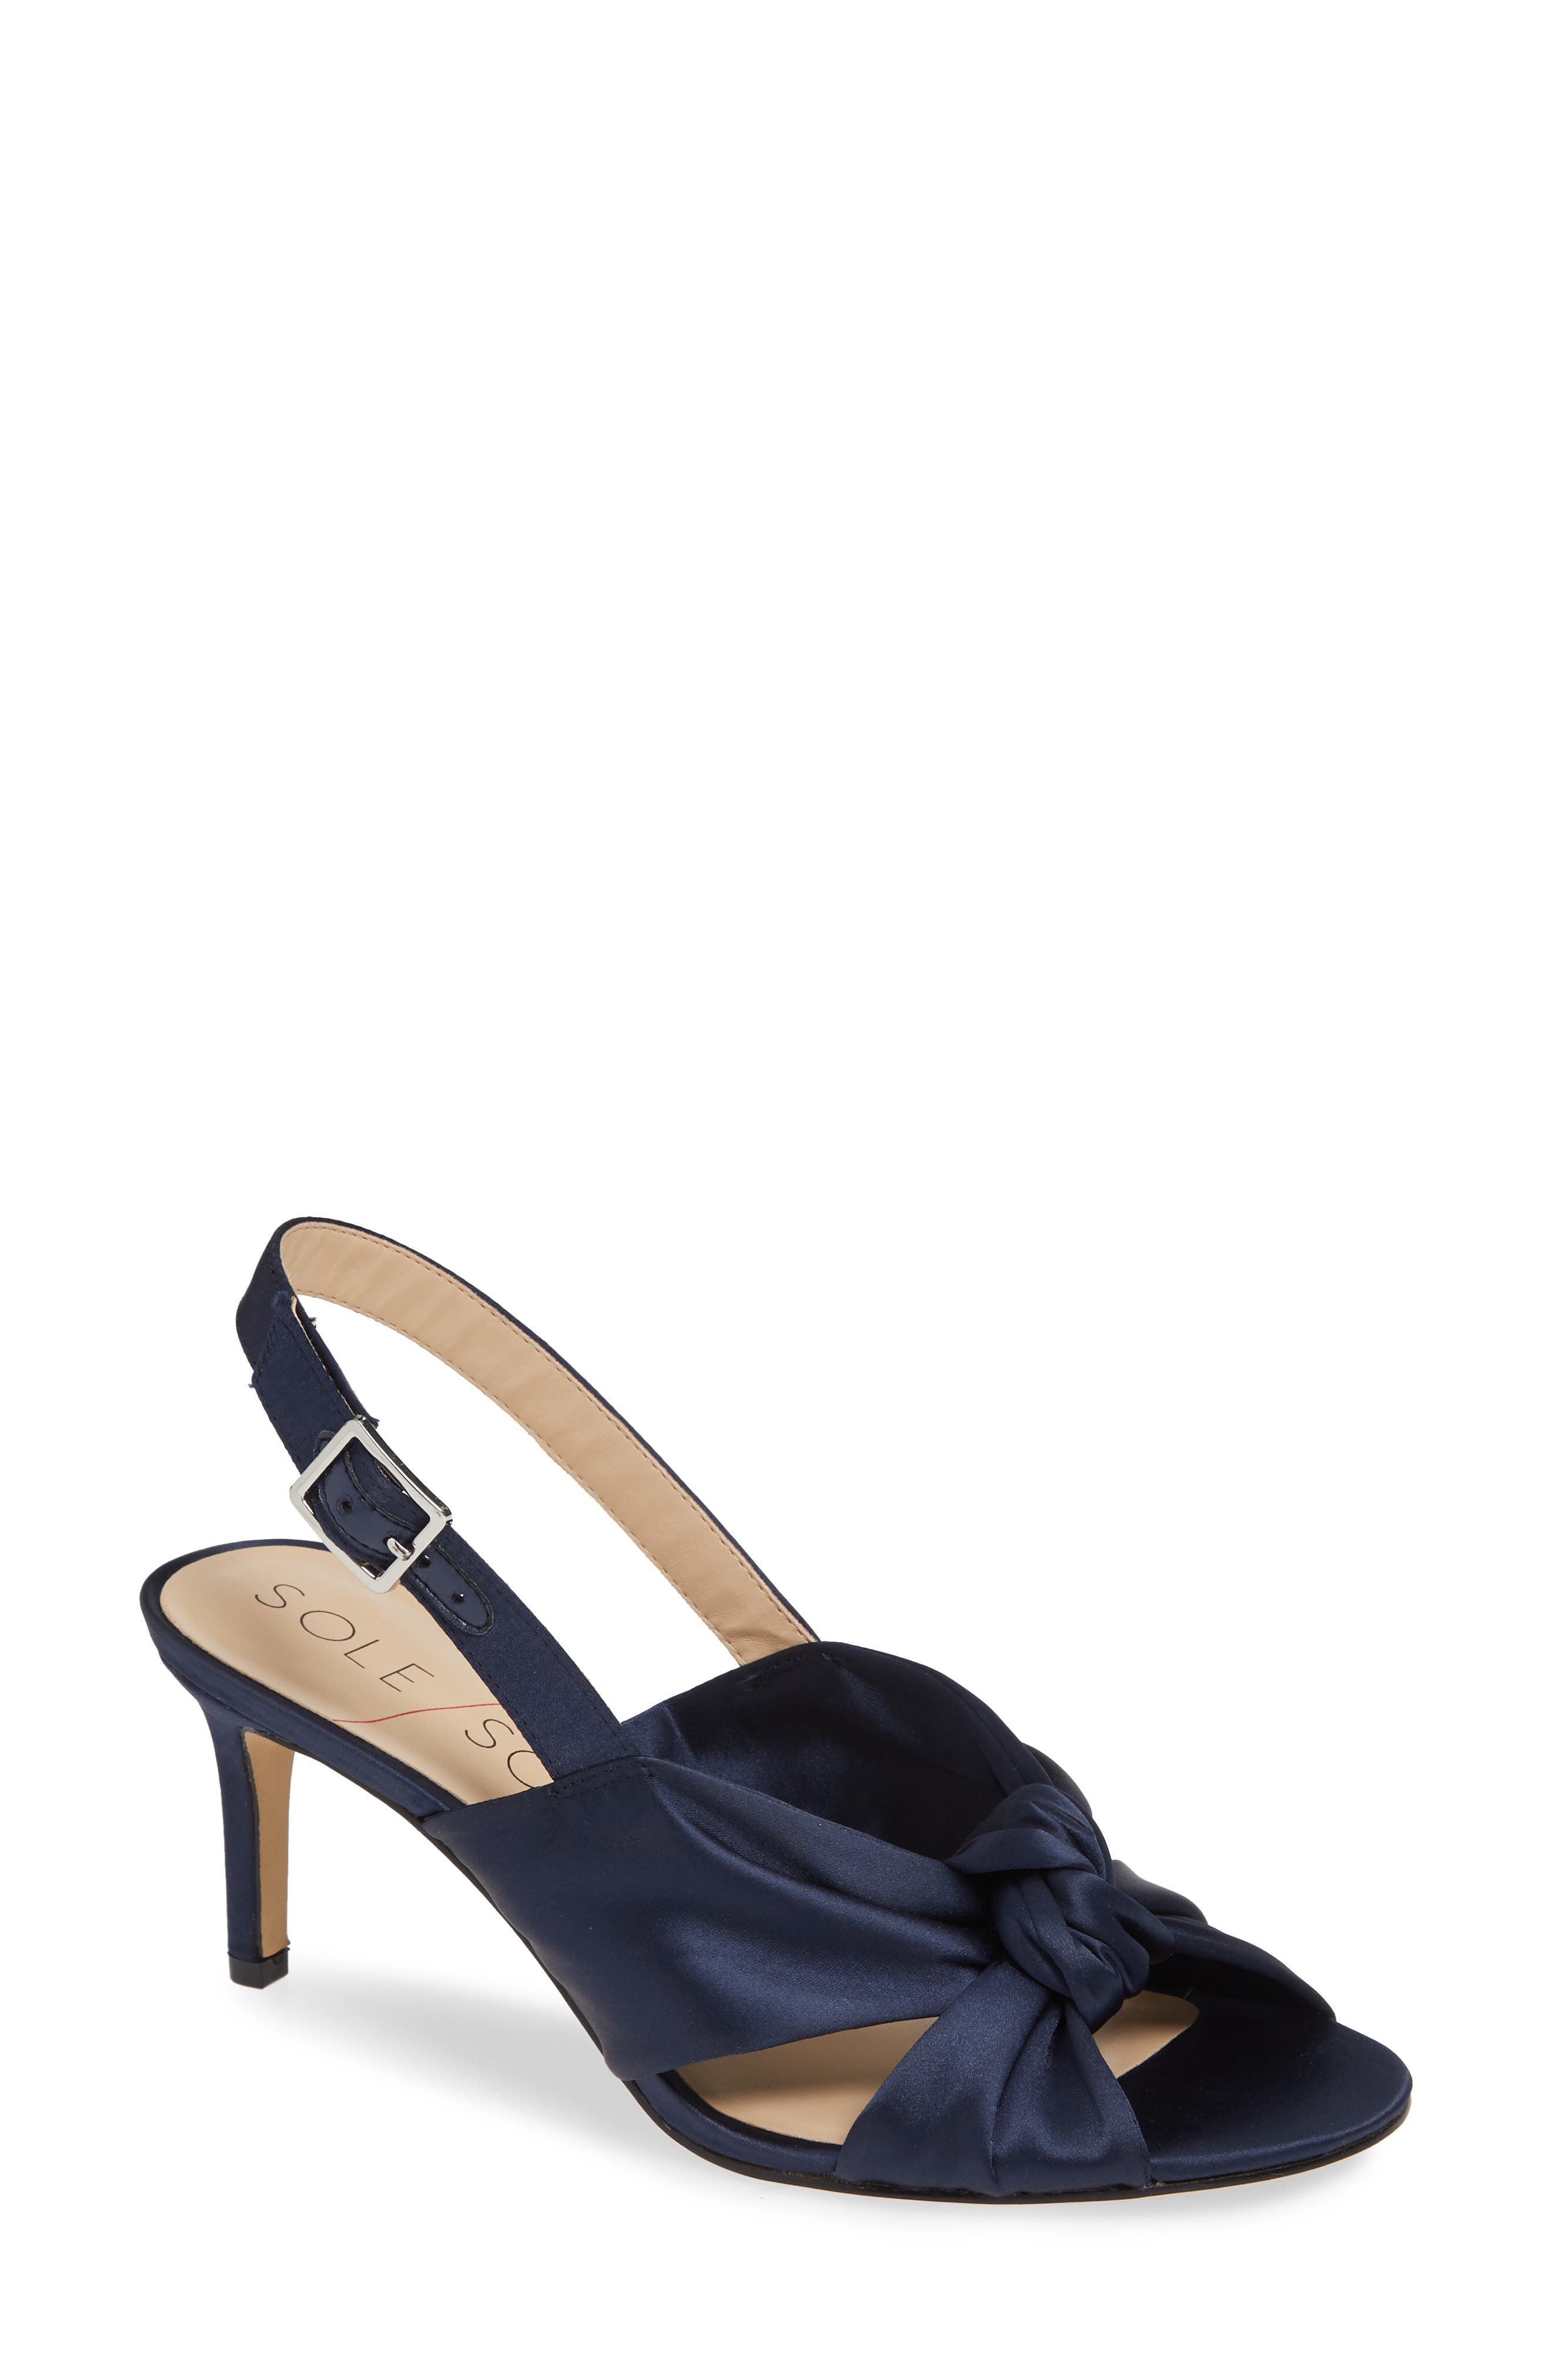 Genneene Knotted Slingback Sandal,                             Main thumbnail 1, color,                             MIDNIGHT SATIN